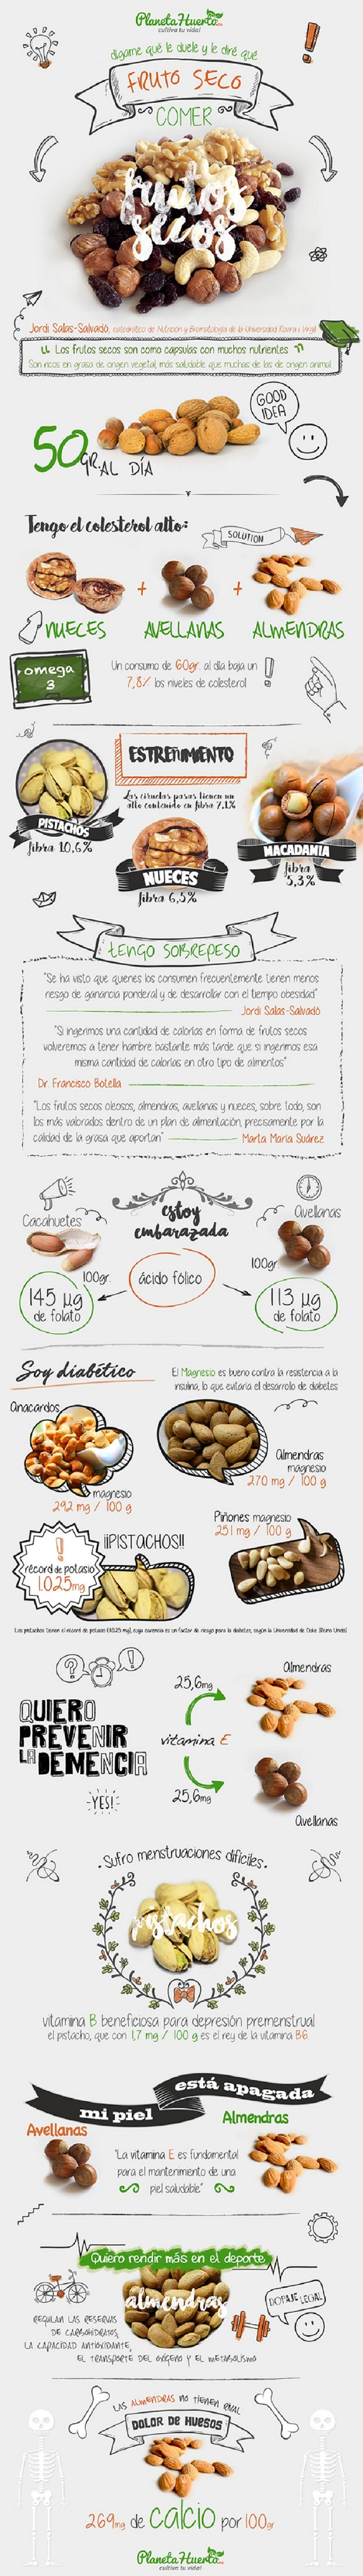 infografía frutos secos